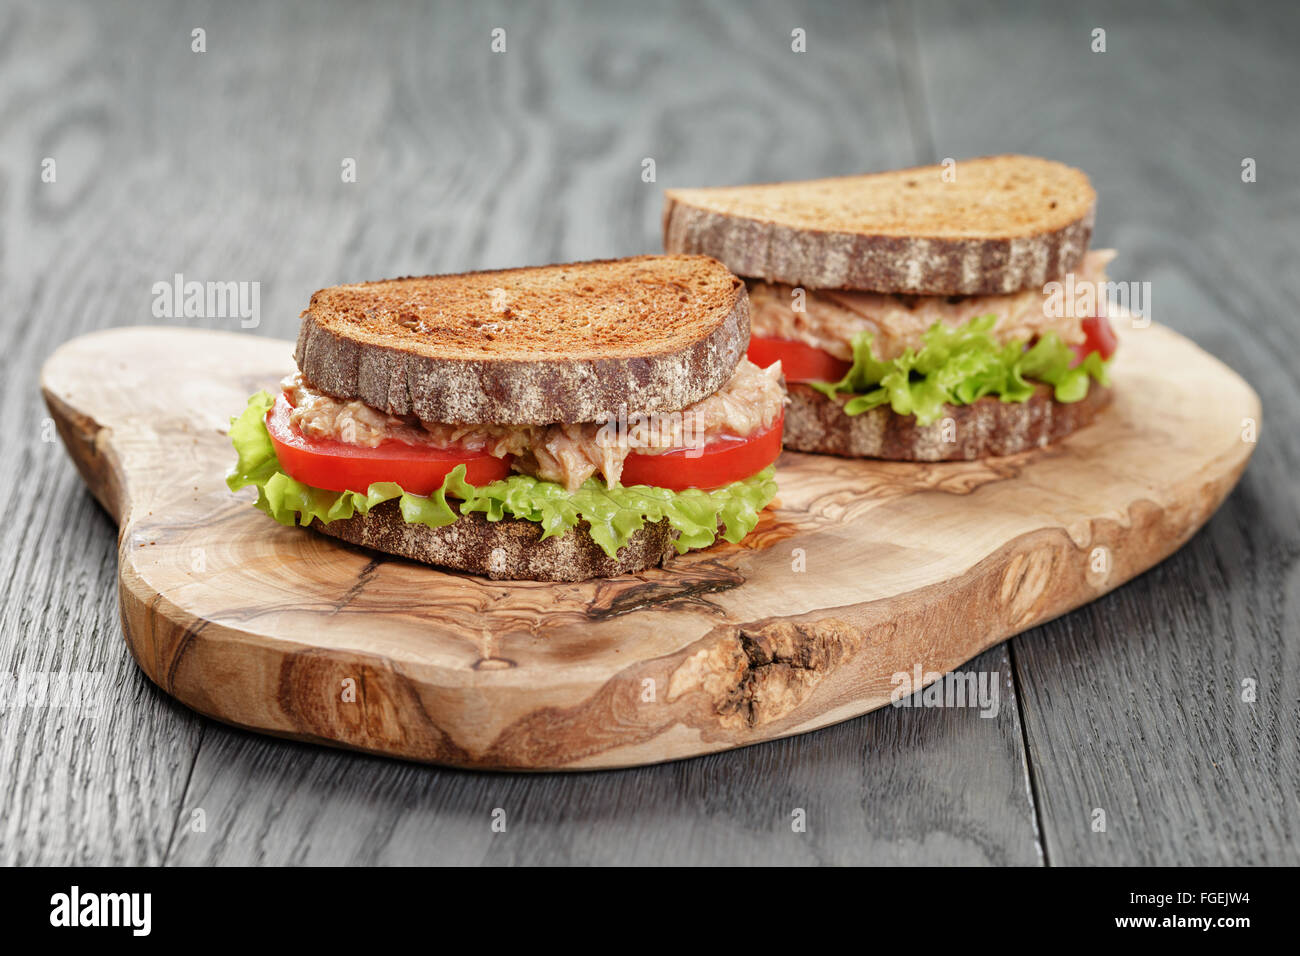 rye bread sandwich with tuna and vegetables - Stock Image